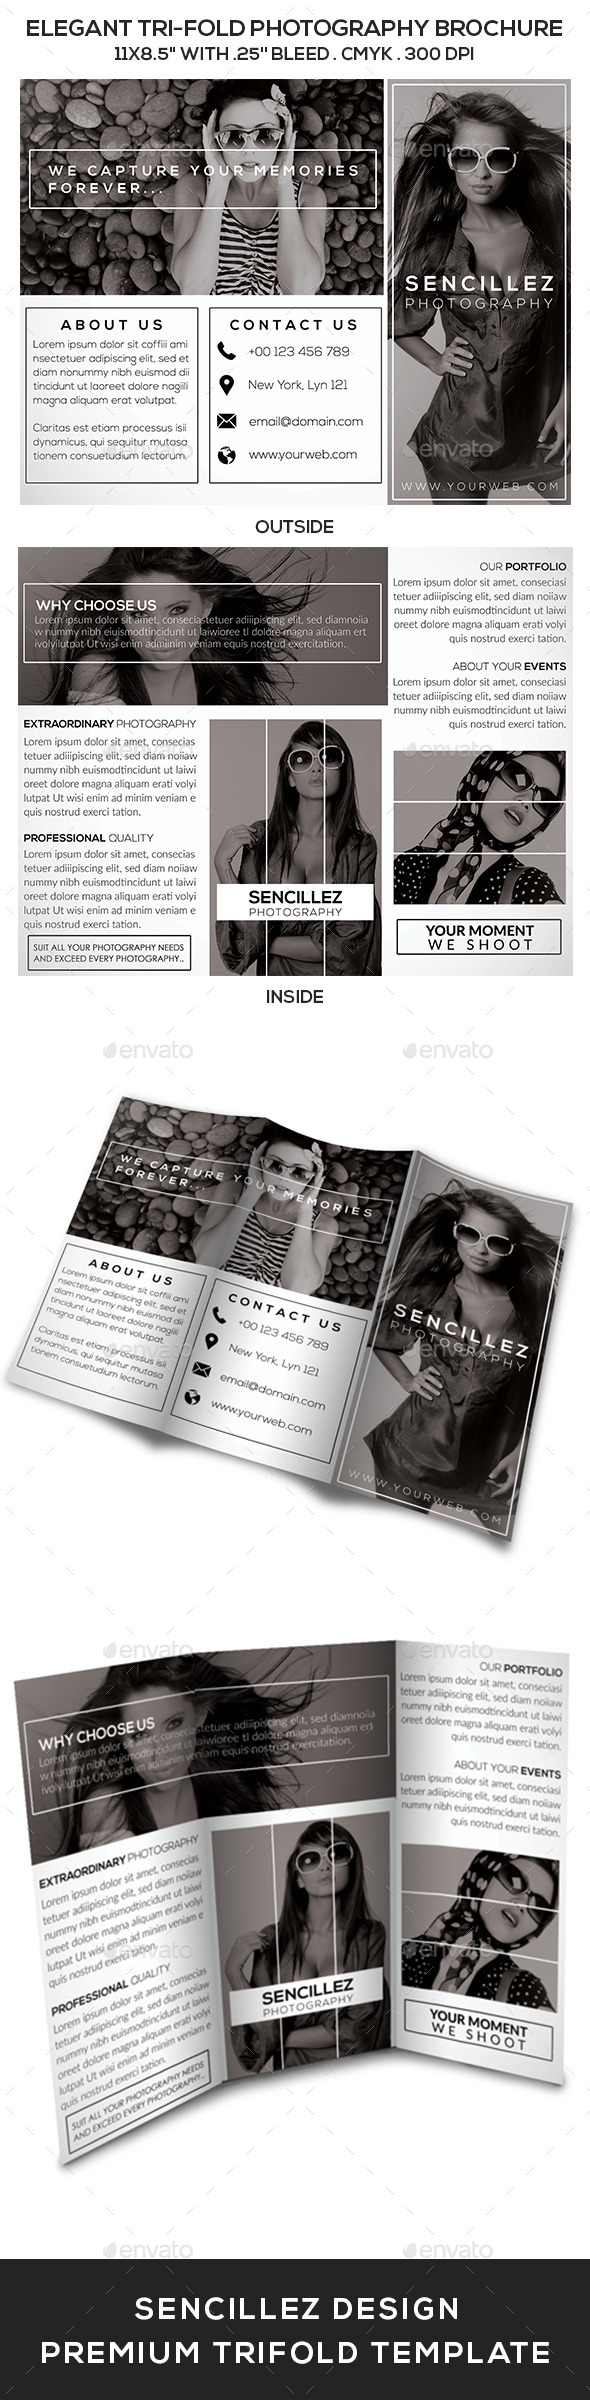 GraphicRiver Elegant Tri-Fold Photography Brochure Vol 2 9705775